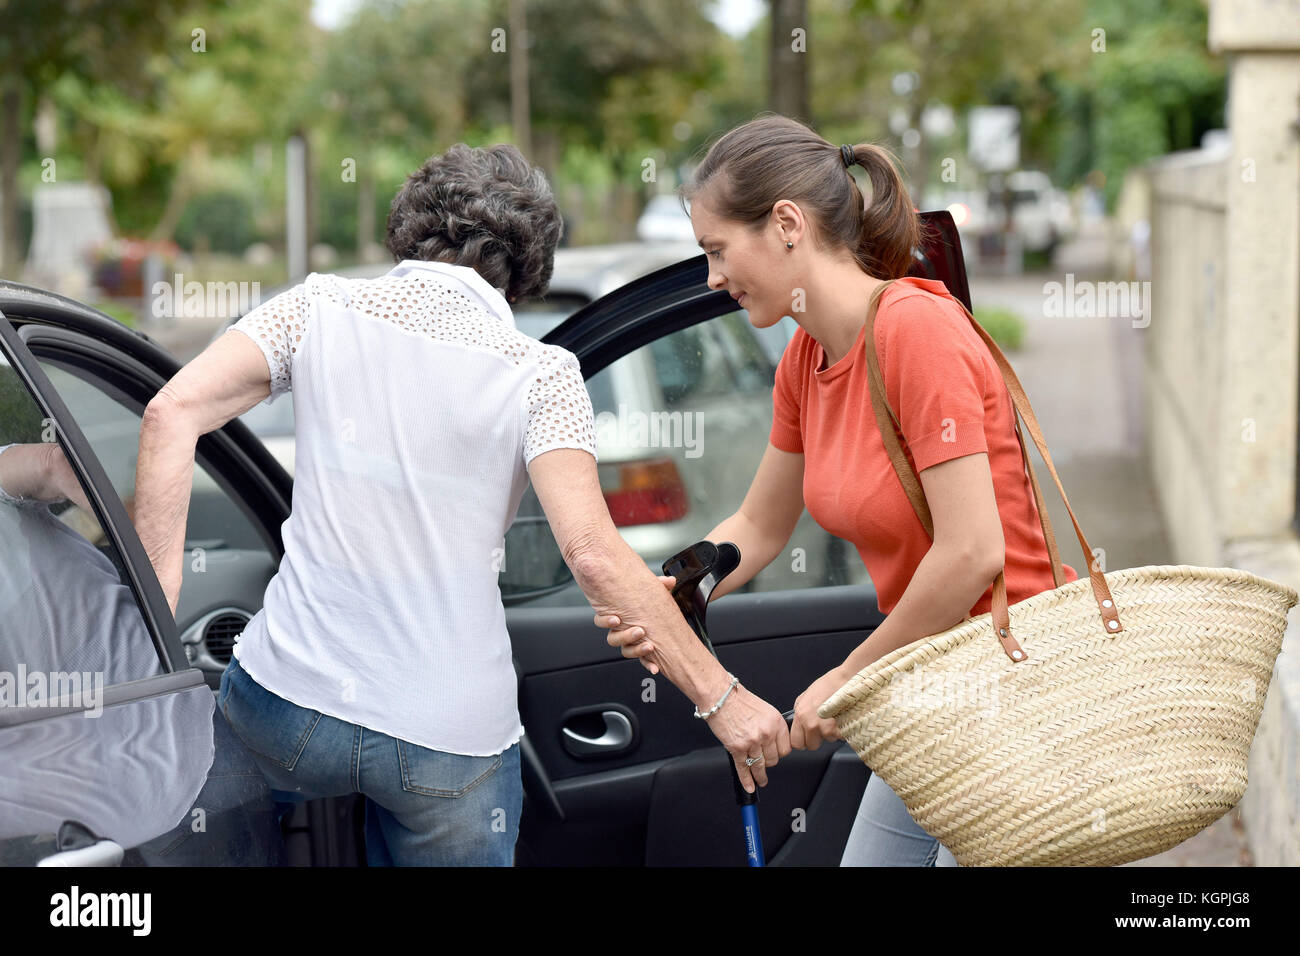 Young carer helping senior woman getting in car - Stock Image